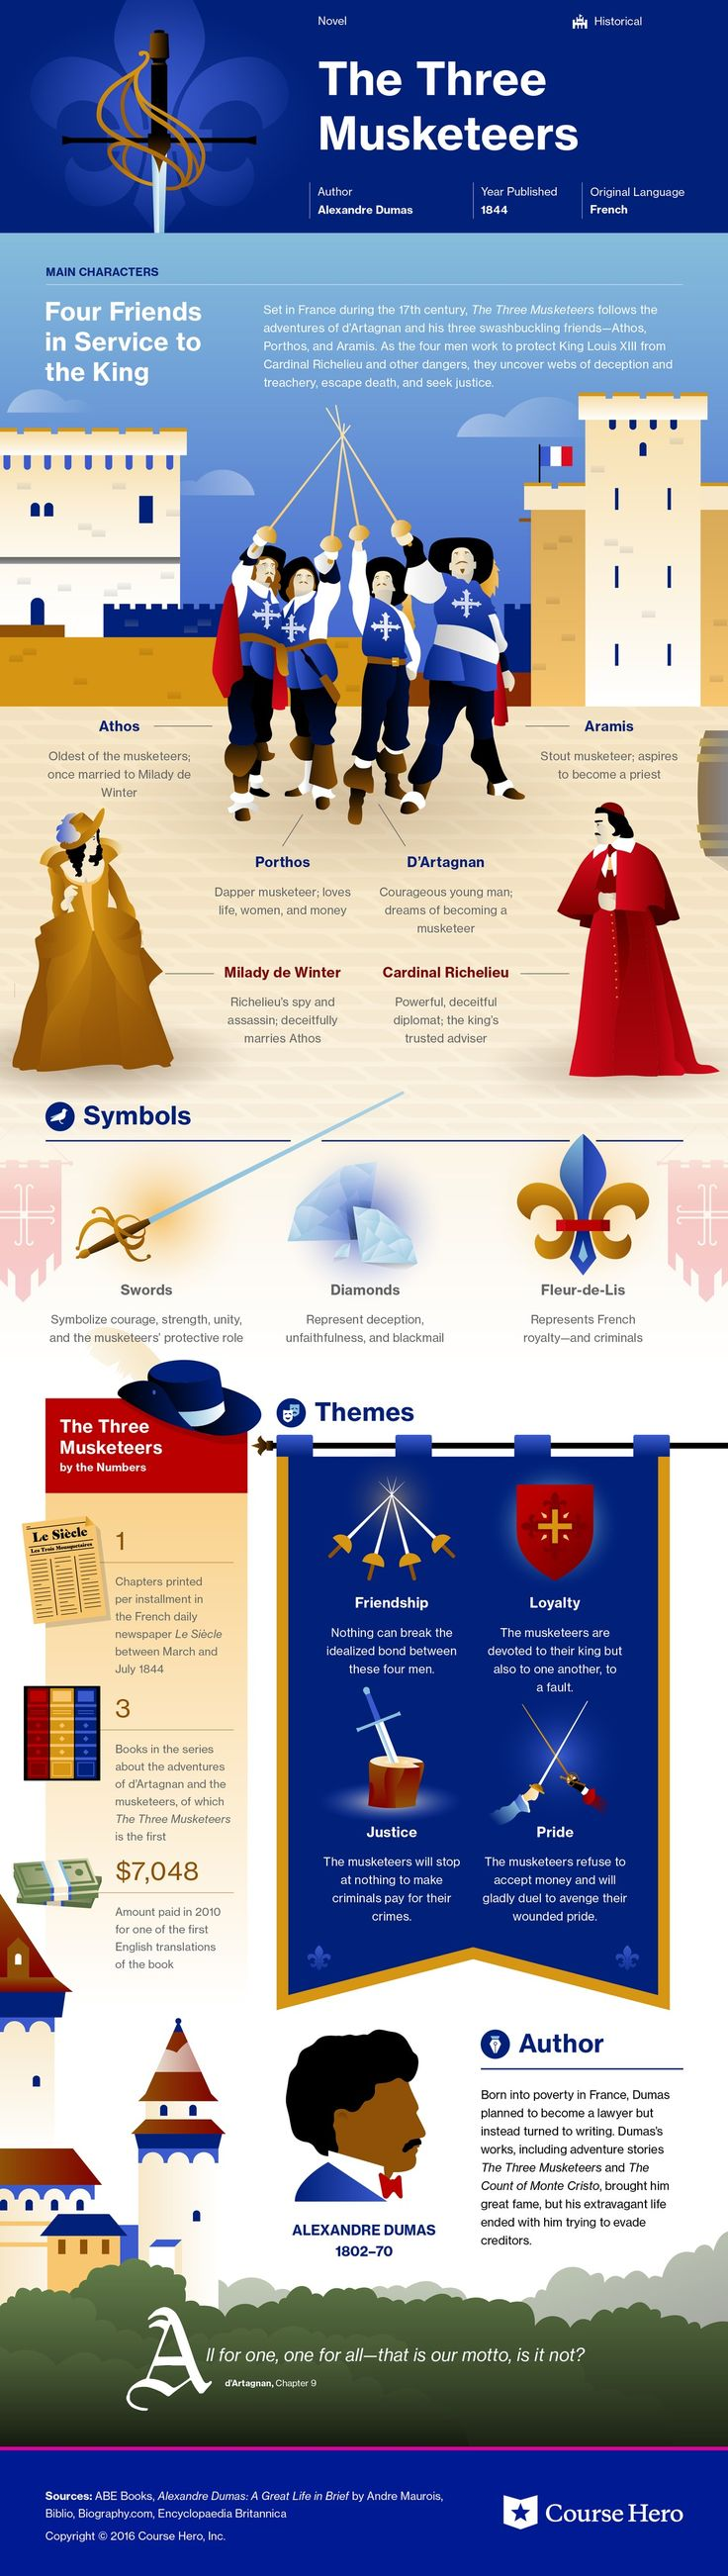 The Three Musketeers Infographic | Course Hero